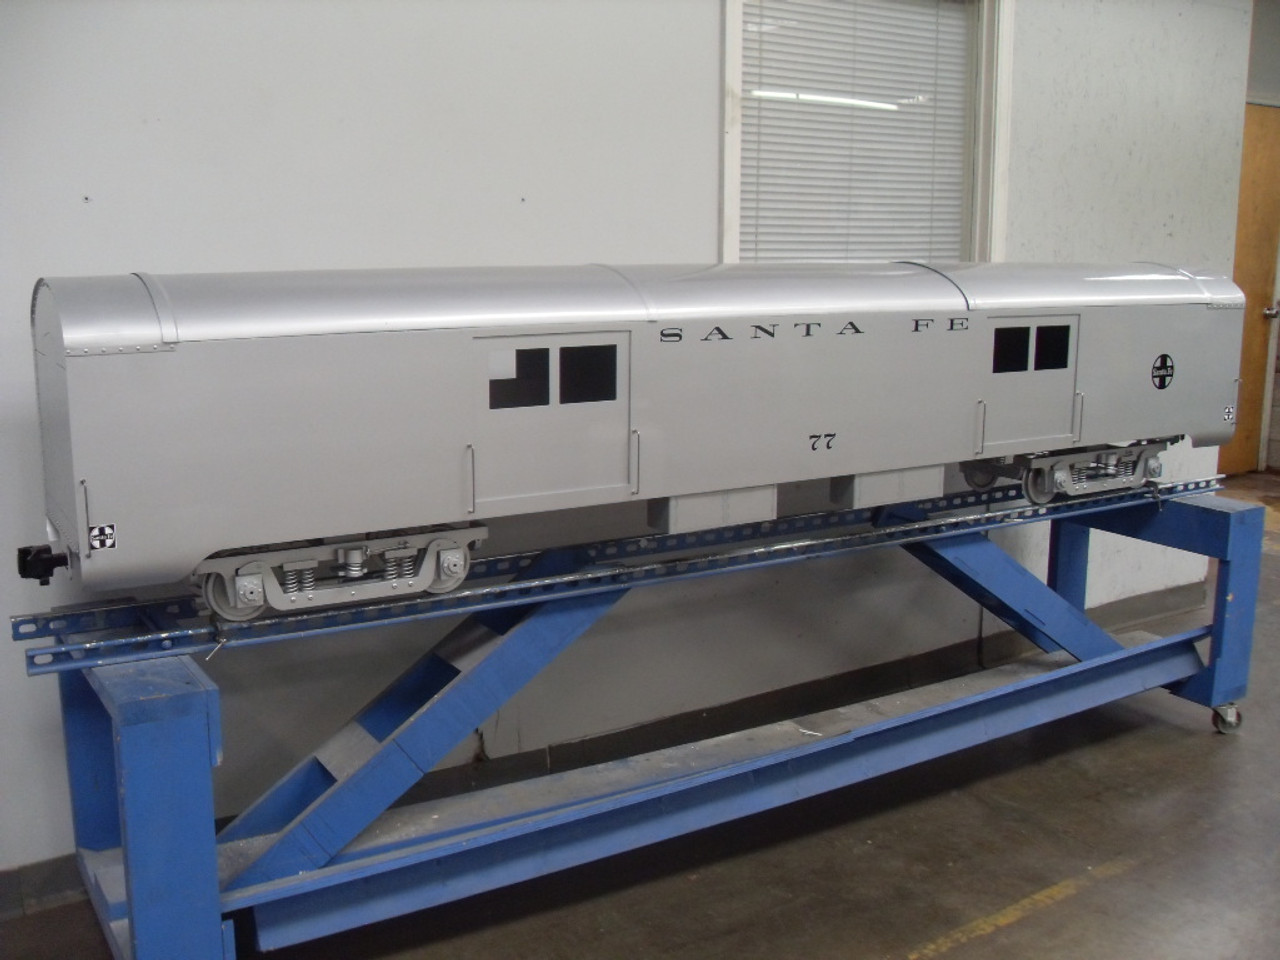 Baggage Car Body, Smooth (Assembled)